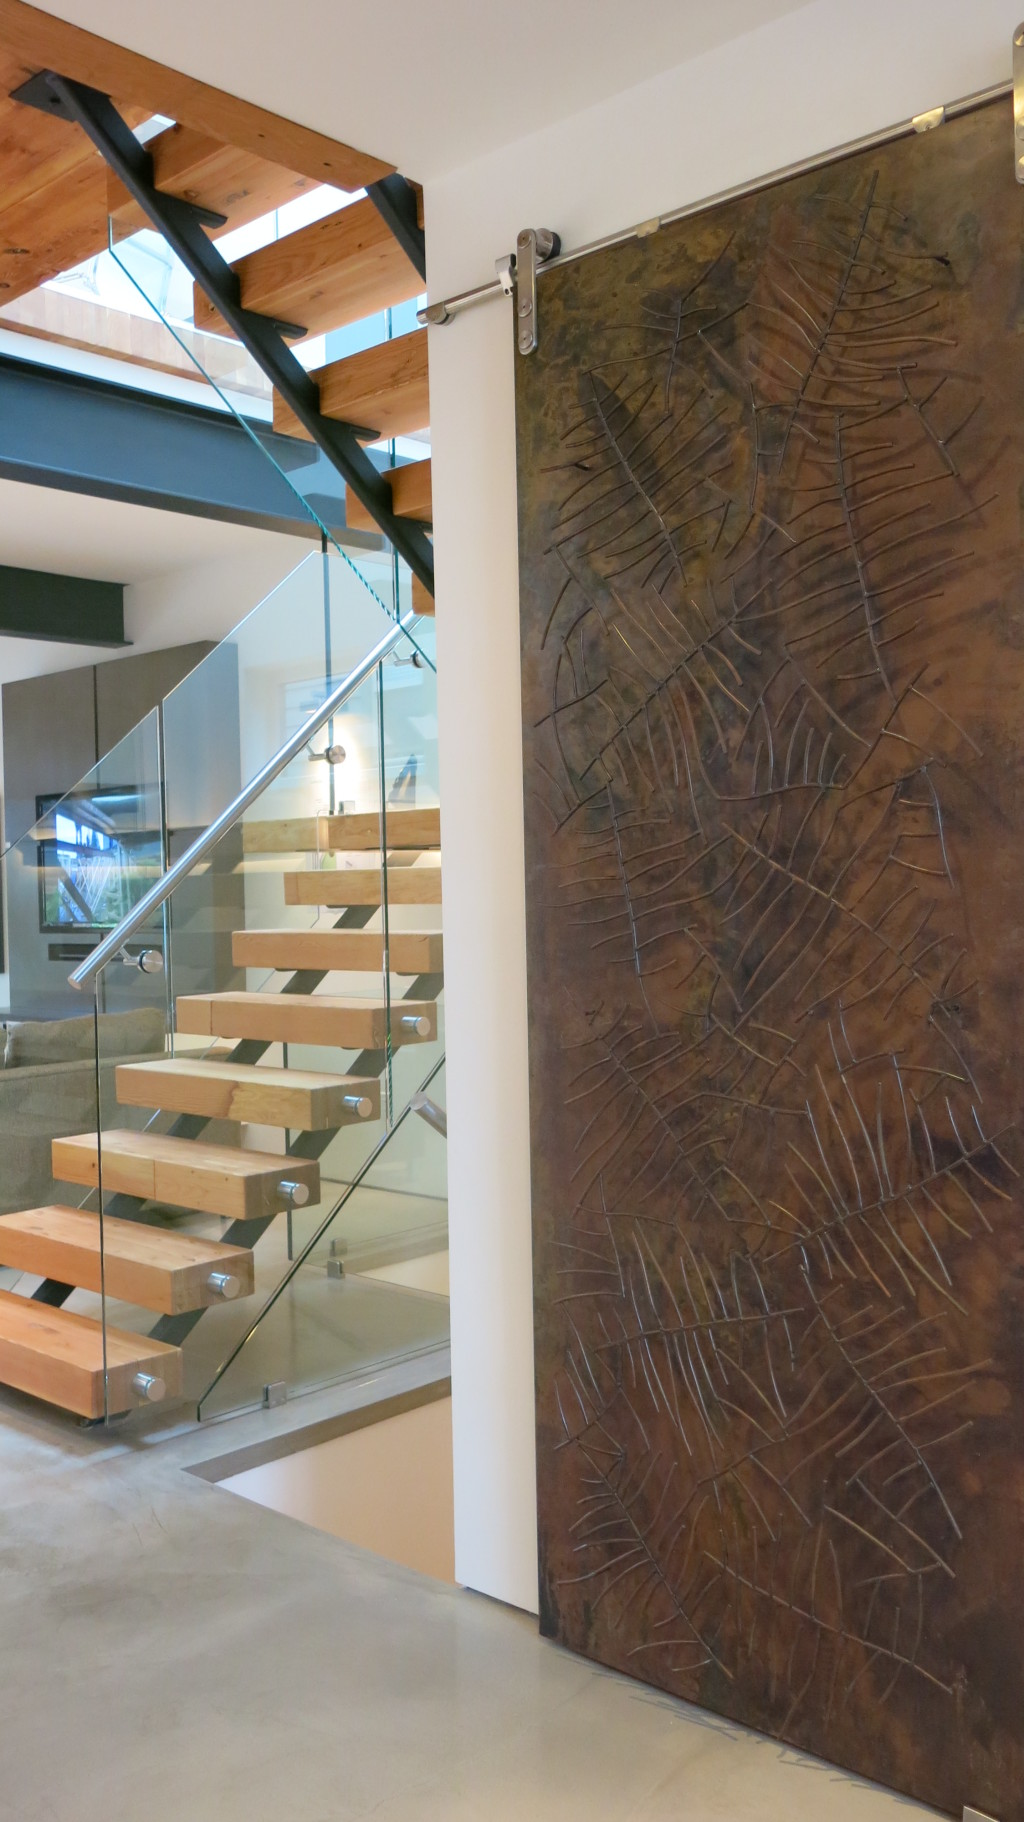 Image: Sliding door panel is an artistic composition and functional.